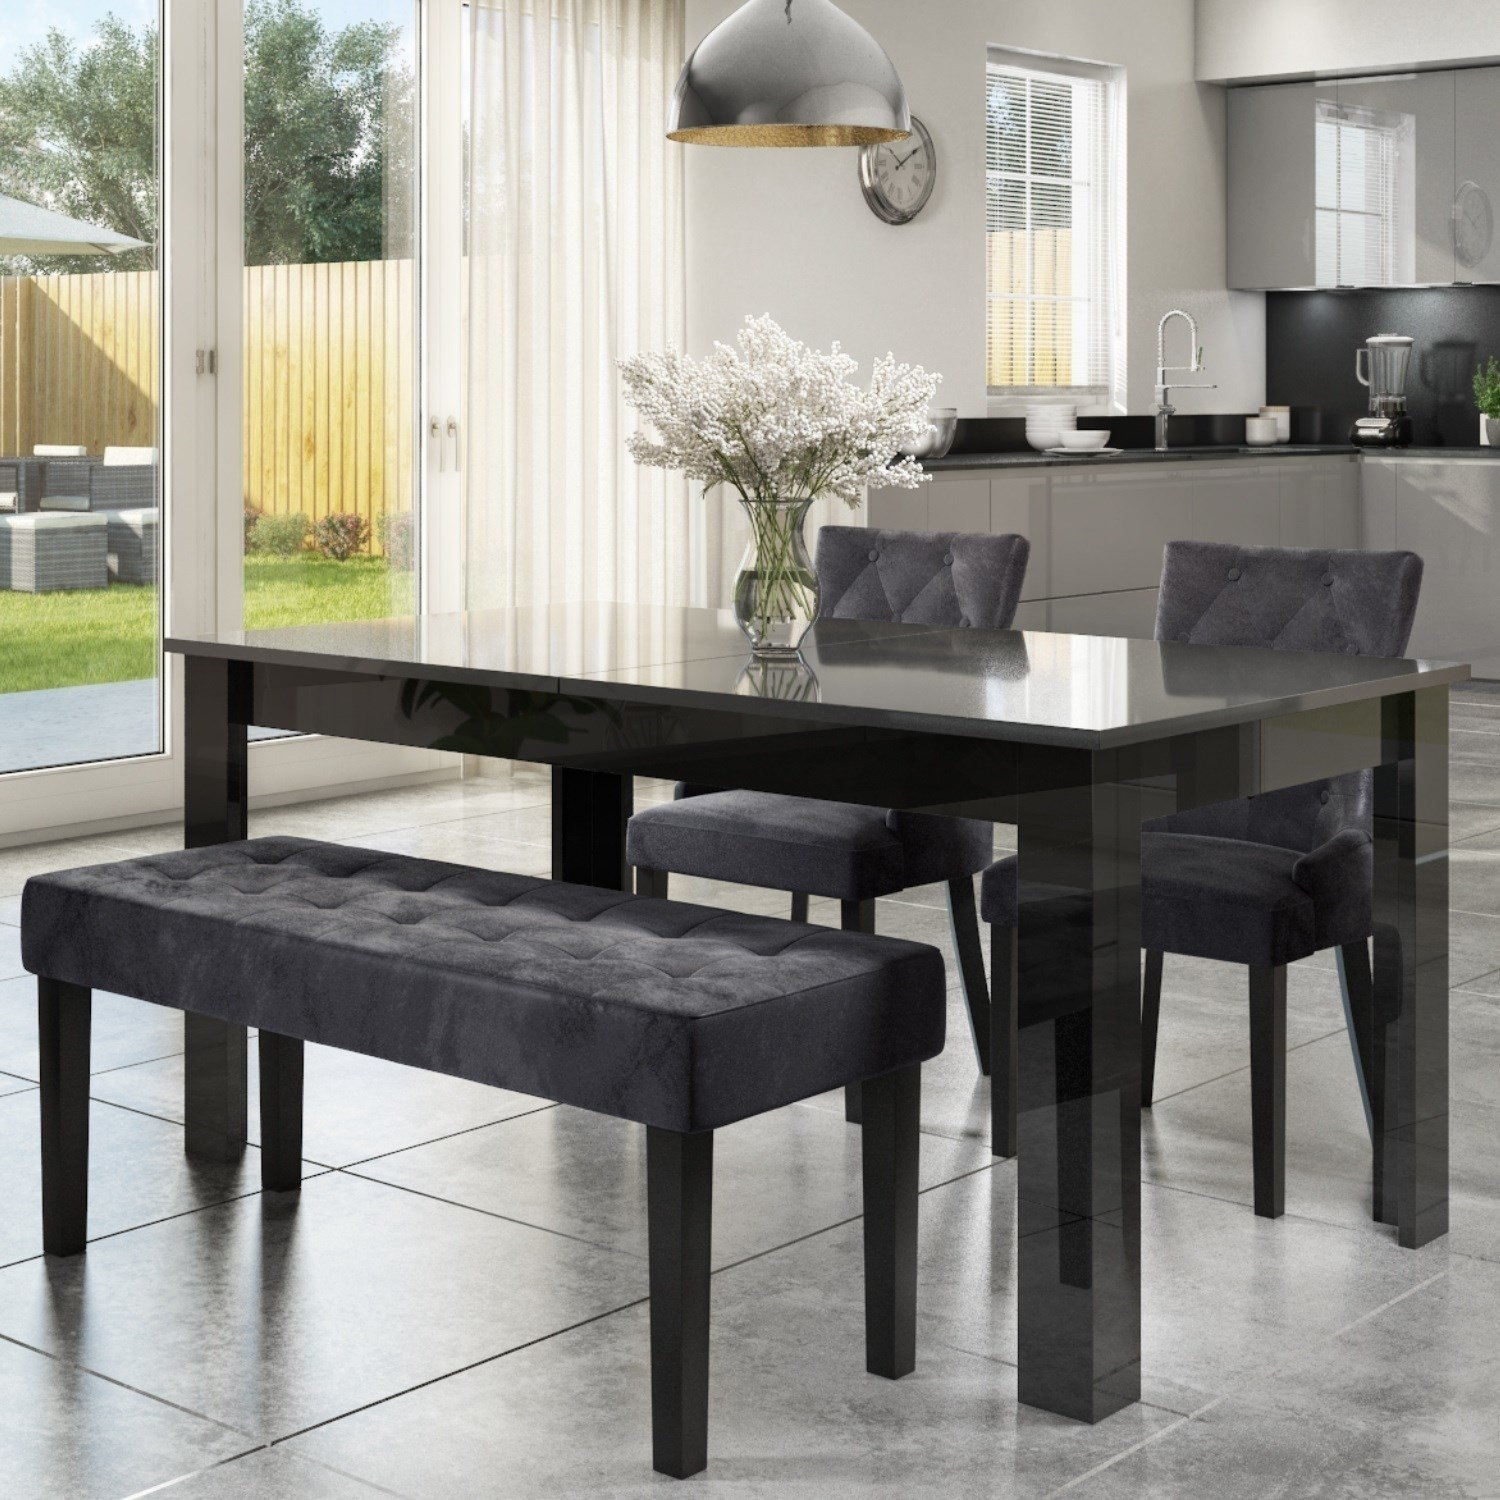 Extendable Dining Table In Black High Gloss With 2 Grey Velvet Chairs 1 Bench Vivienne Kaylee Furniture123